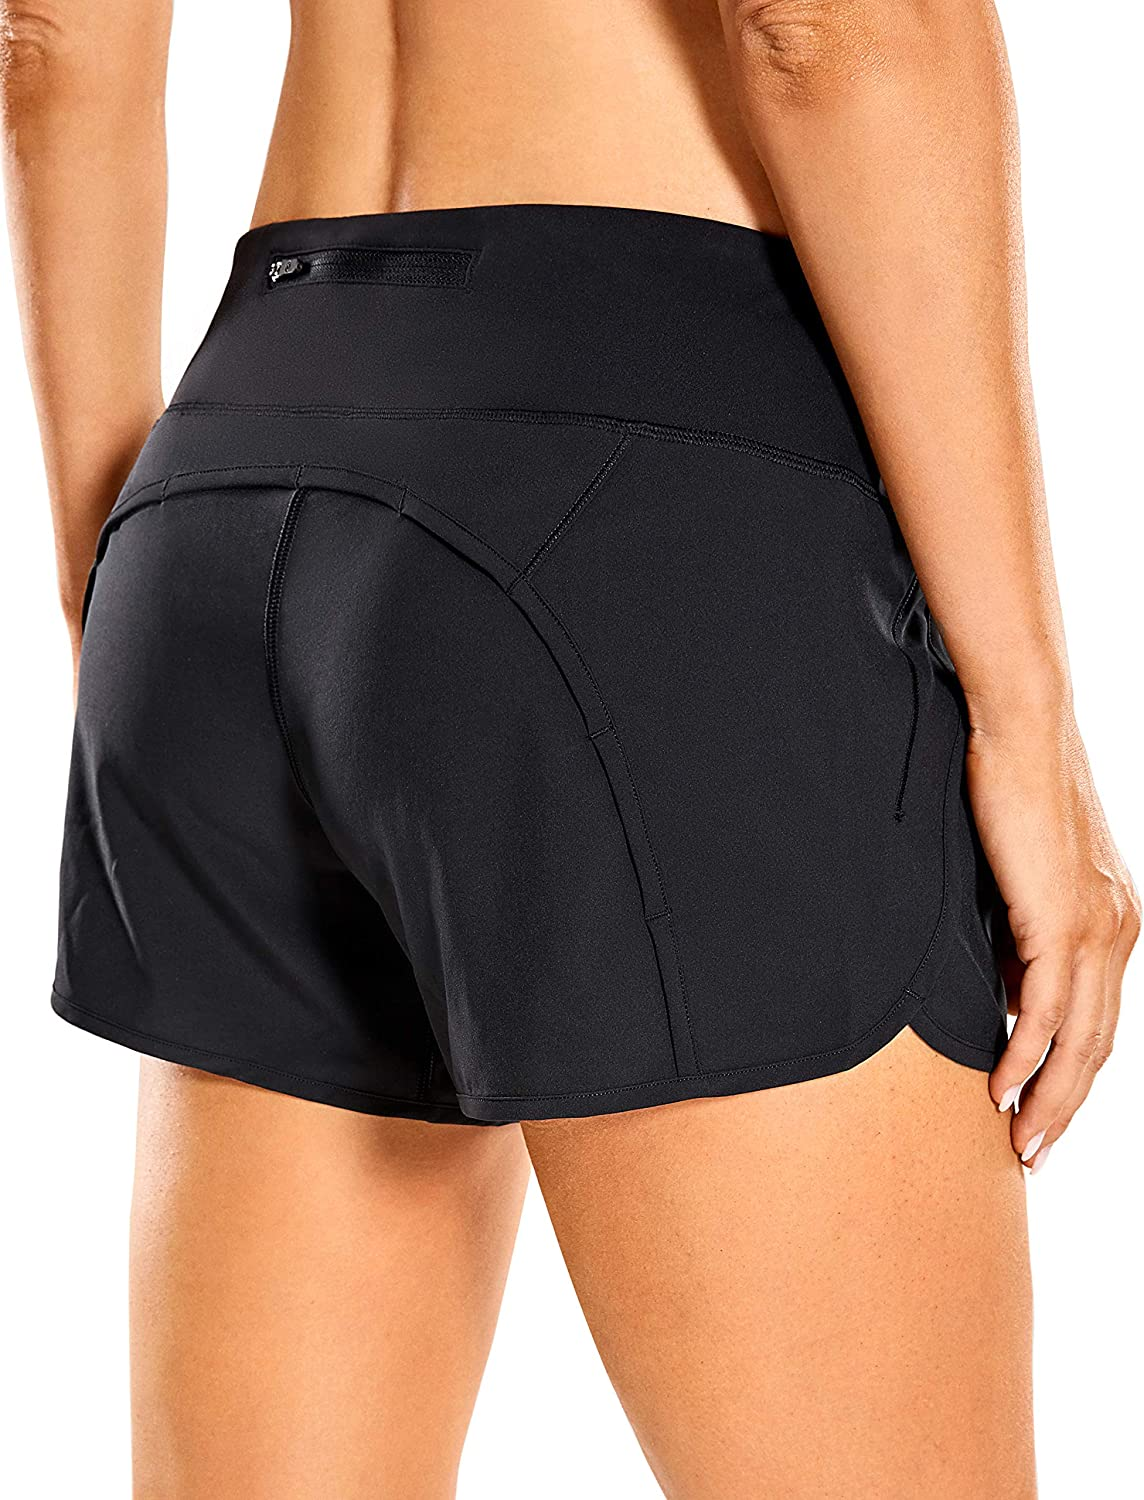 CRZ YOGA Women's Quick-Dry Athletic Sports Running Workout Shorts with Zip Pocket - 4 Inches